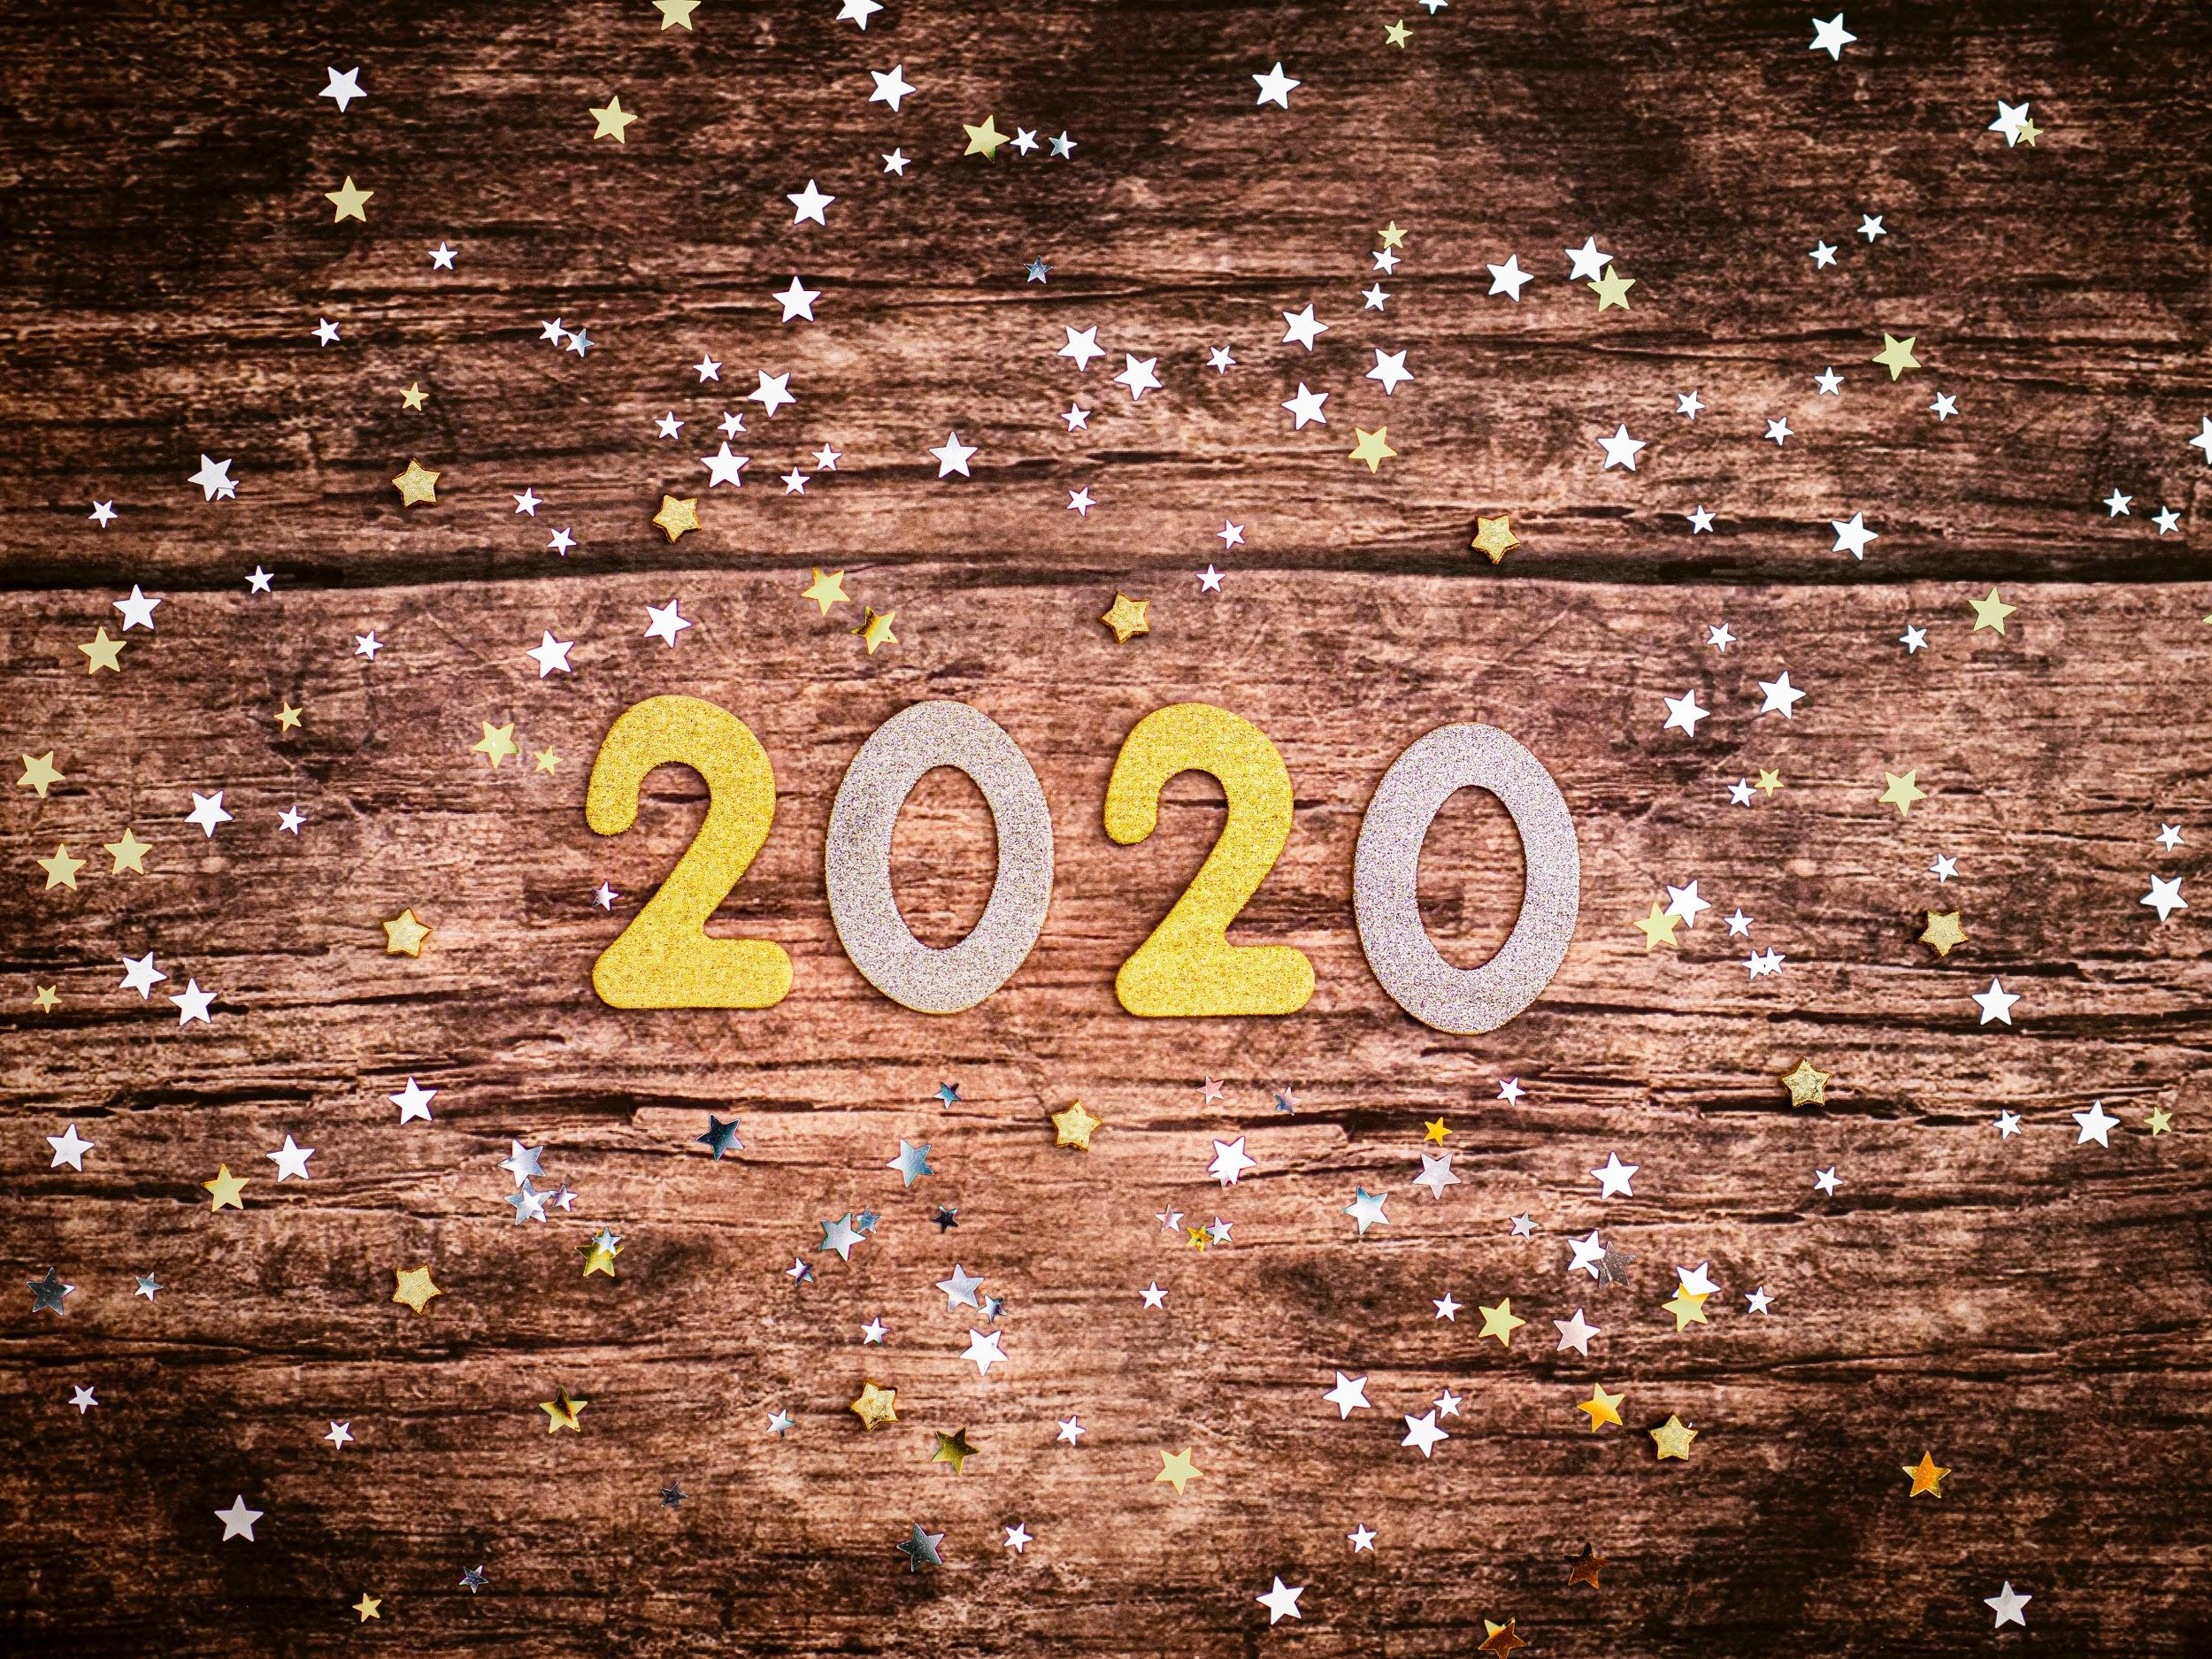 Book marketing in 2020 | From the blog of Nicholas C. Rossis, author of science fiction, the Pearseus epic fantasy series and children's books